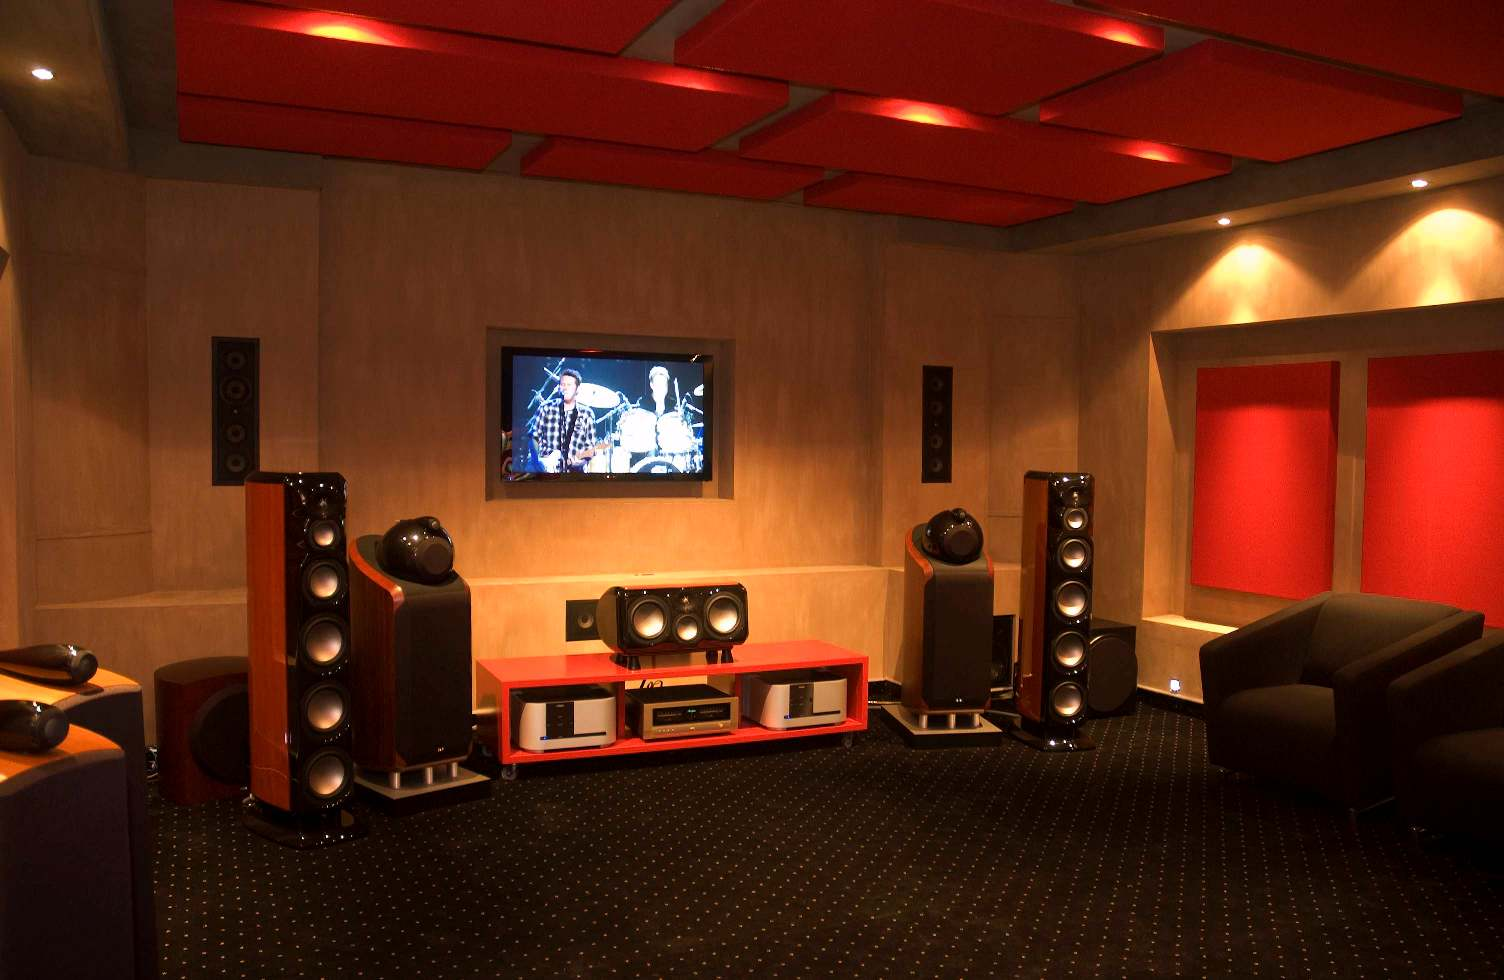 Home Theater Design home theater design tips ideas for home theater design hgtv Home Theater Tv Stereo Media Room Installer Designer Audio Video Innovations Victoria Texas